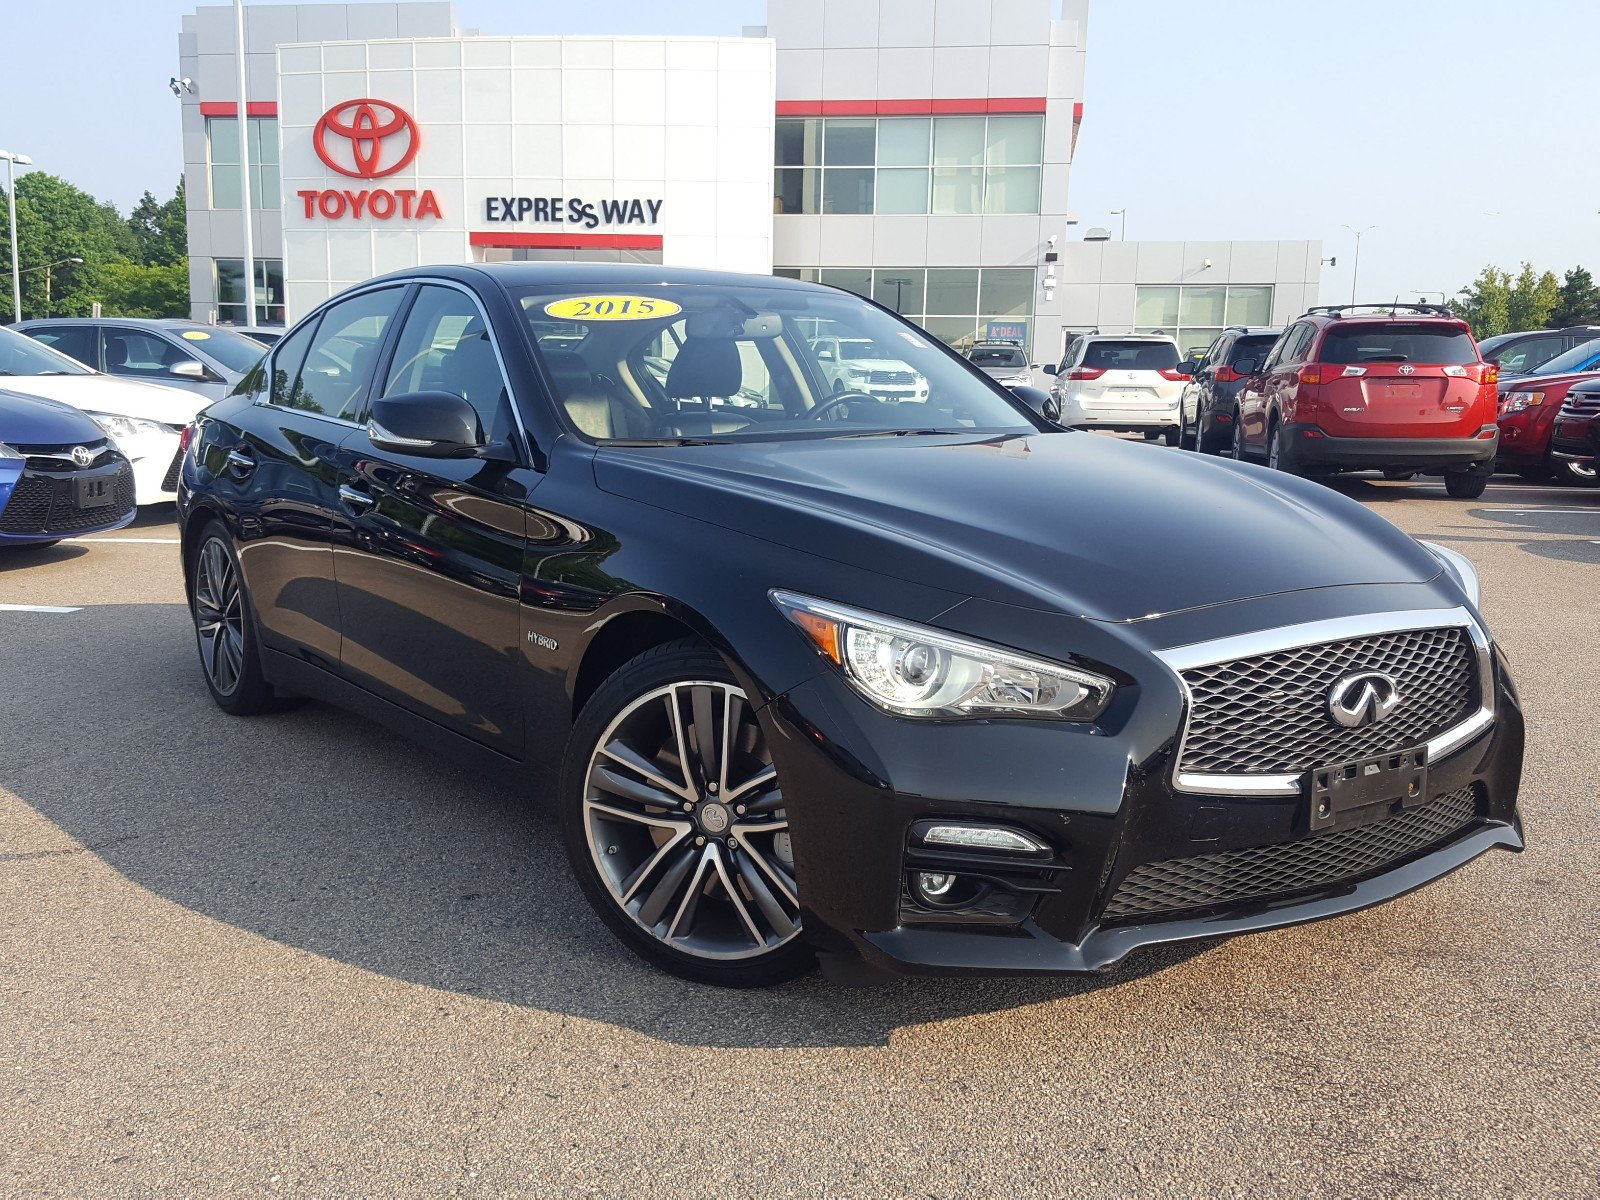 pre owned 2015 infiniti q50 hybrid sport 4dr car 33 558 in boston 21109a expressway toyota. Black Bedroom Furniture Sets. Home Design Ideas